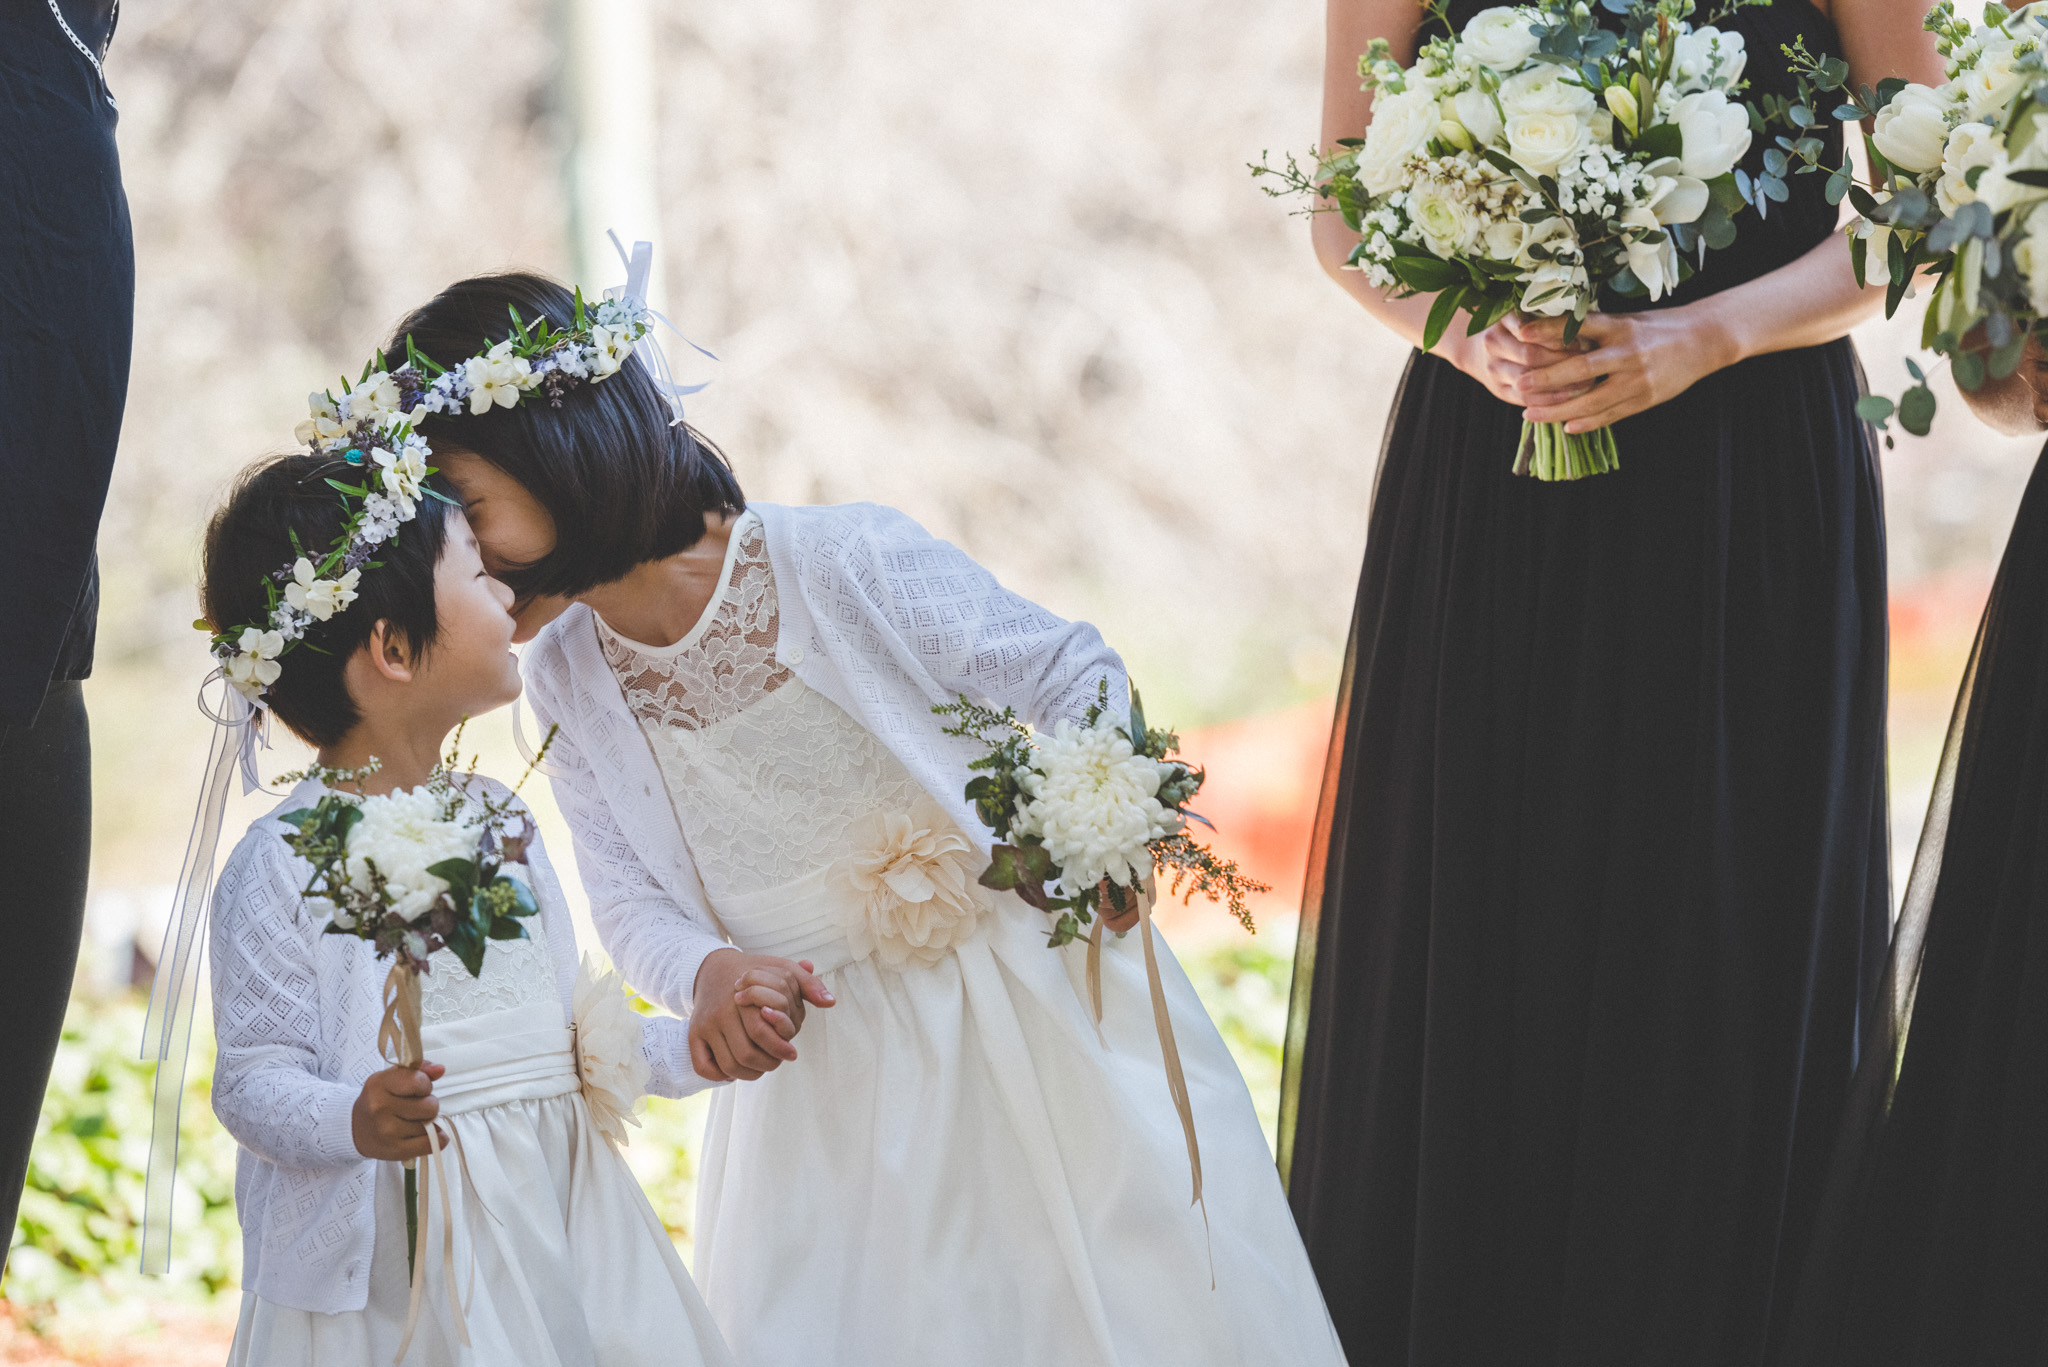 flower girl attire and flowers